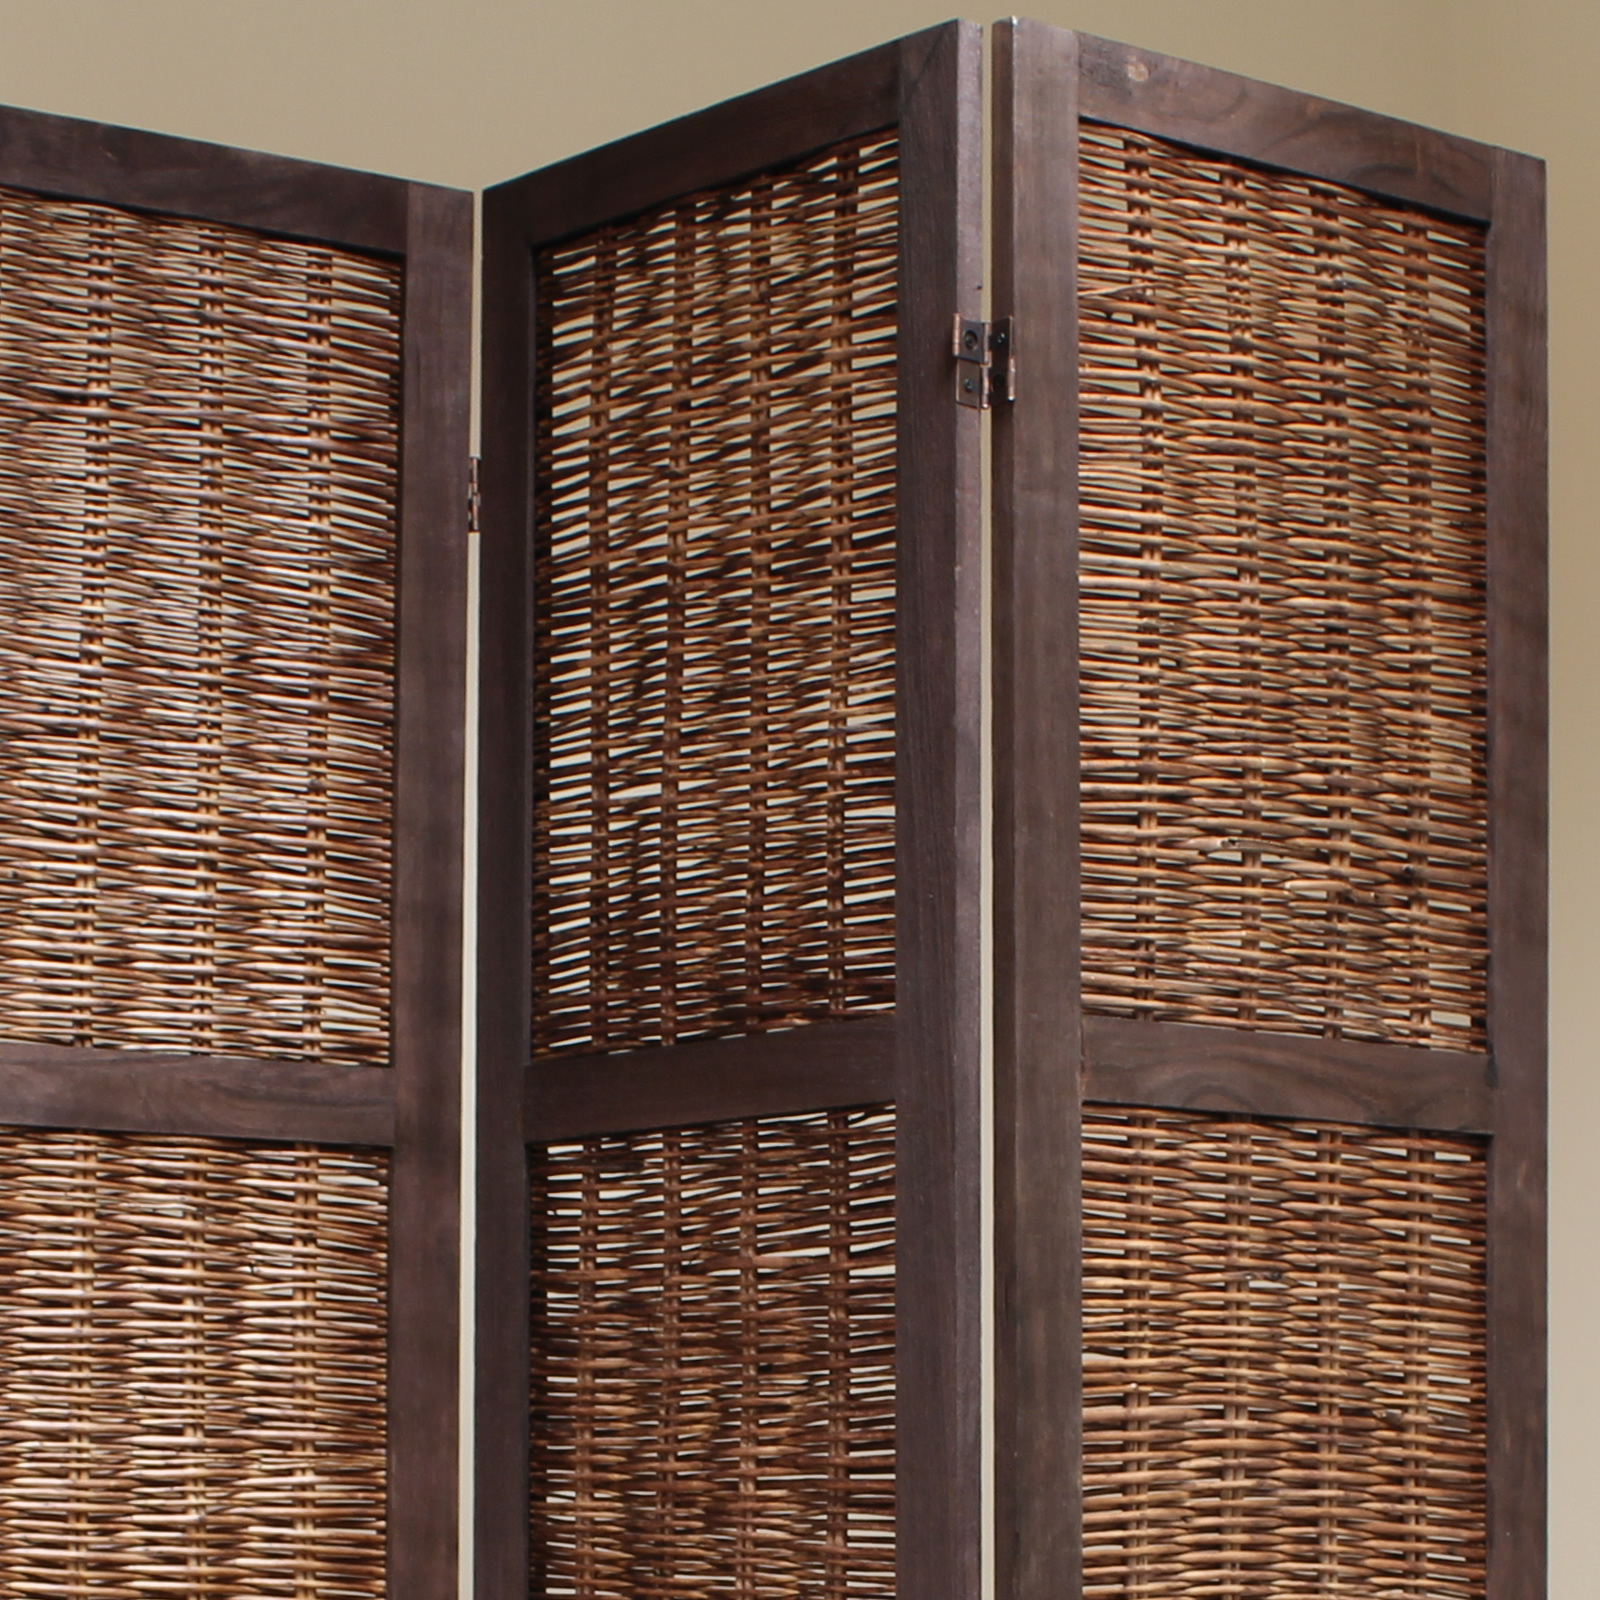 Brown 6 Panel Wood Frame Wicker Room Divider Privacy Screen//Separator//Partition